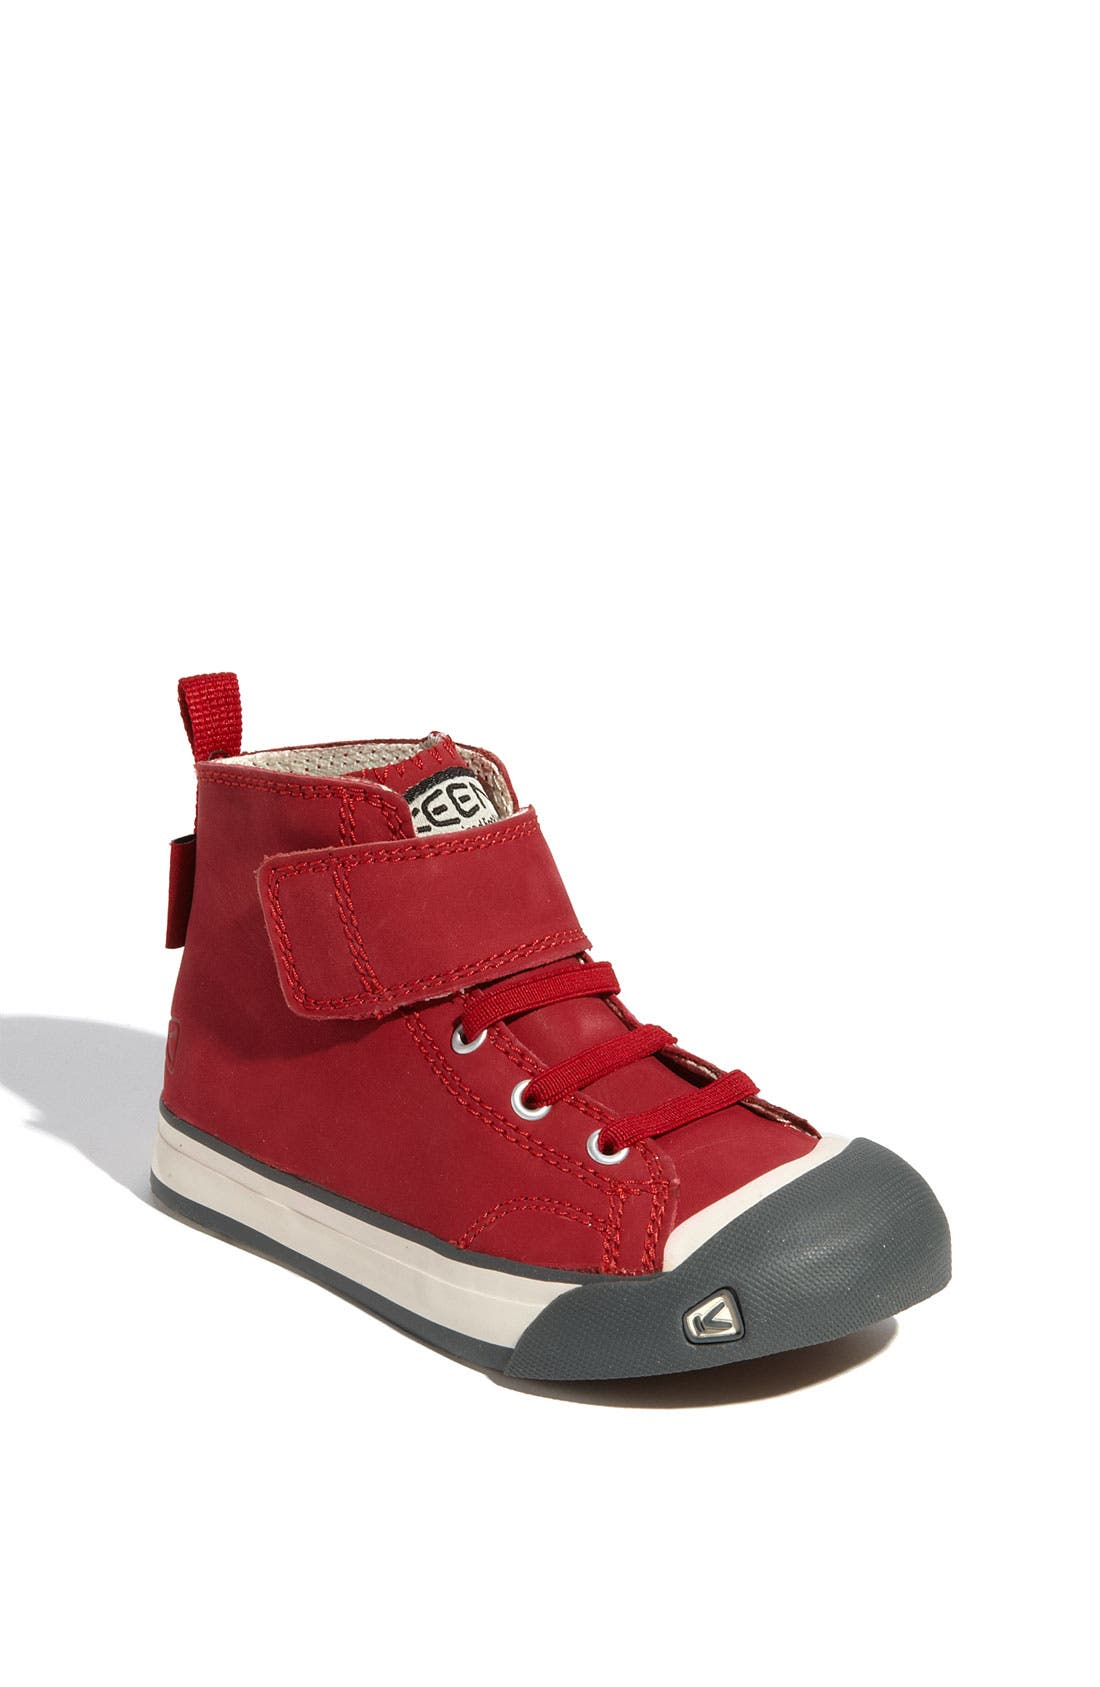 Main Image - Keen 'Coronado' High Top (Toddler & Little Kid)